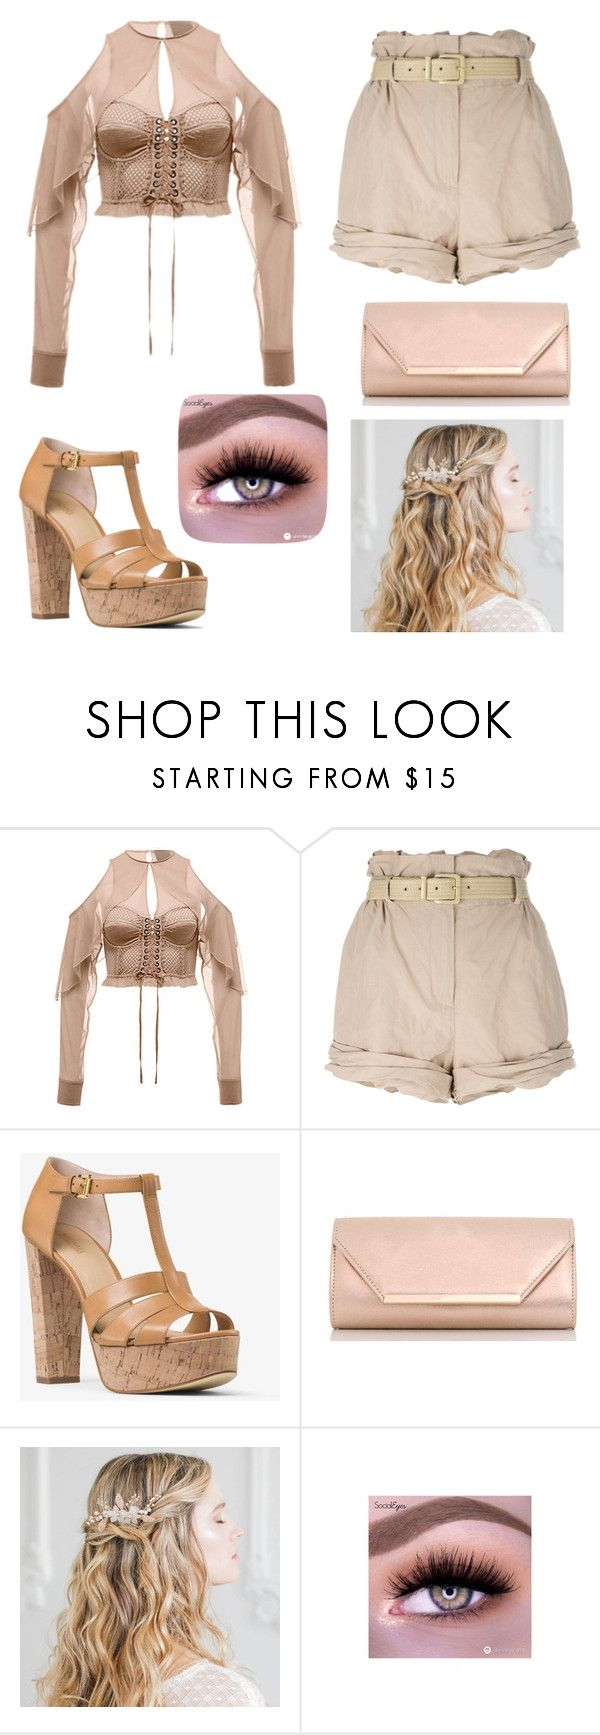 """Untitled #2"" by lfdkbchkbfg ❤ liked on Polyvore featuring Moschino, MICHAEL Michael Kors and Dorothy Perkins"